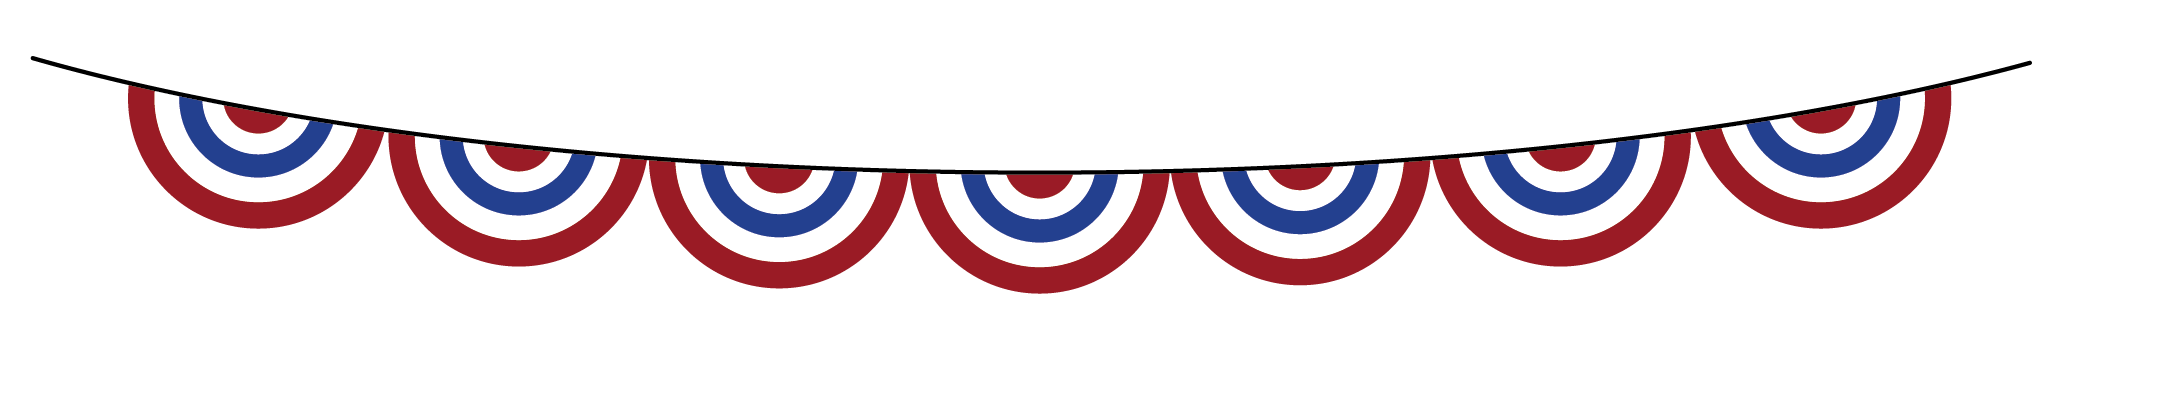 Clipart banner 4th.